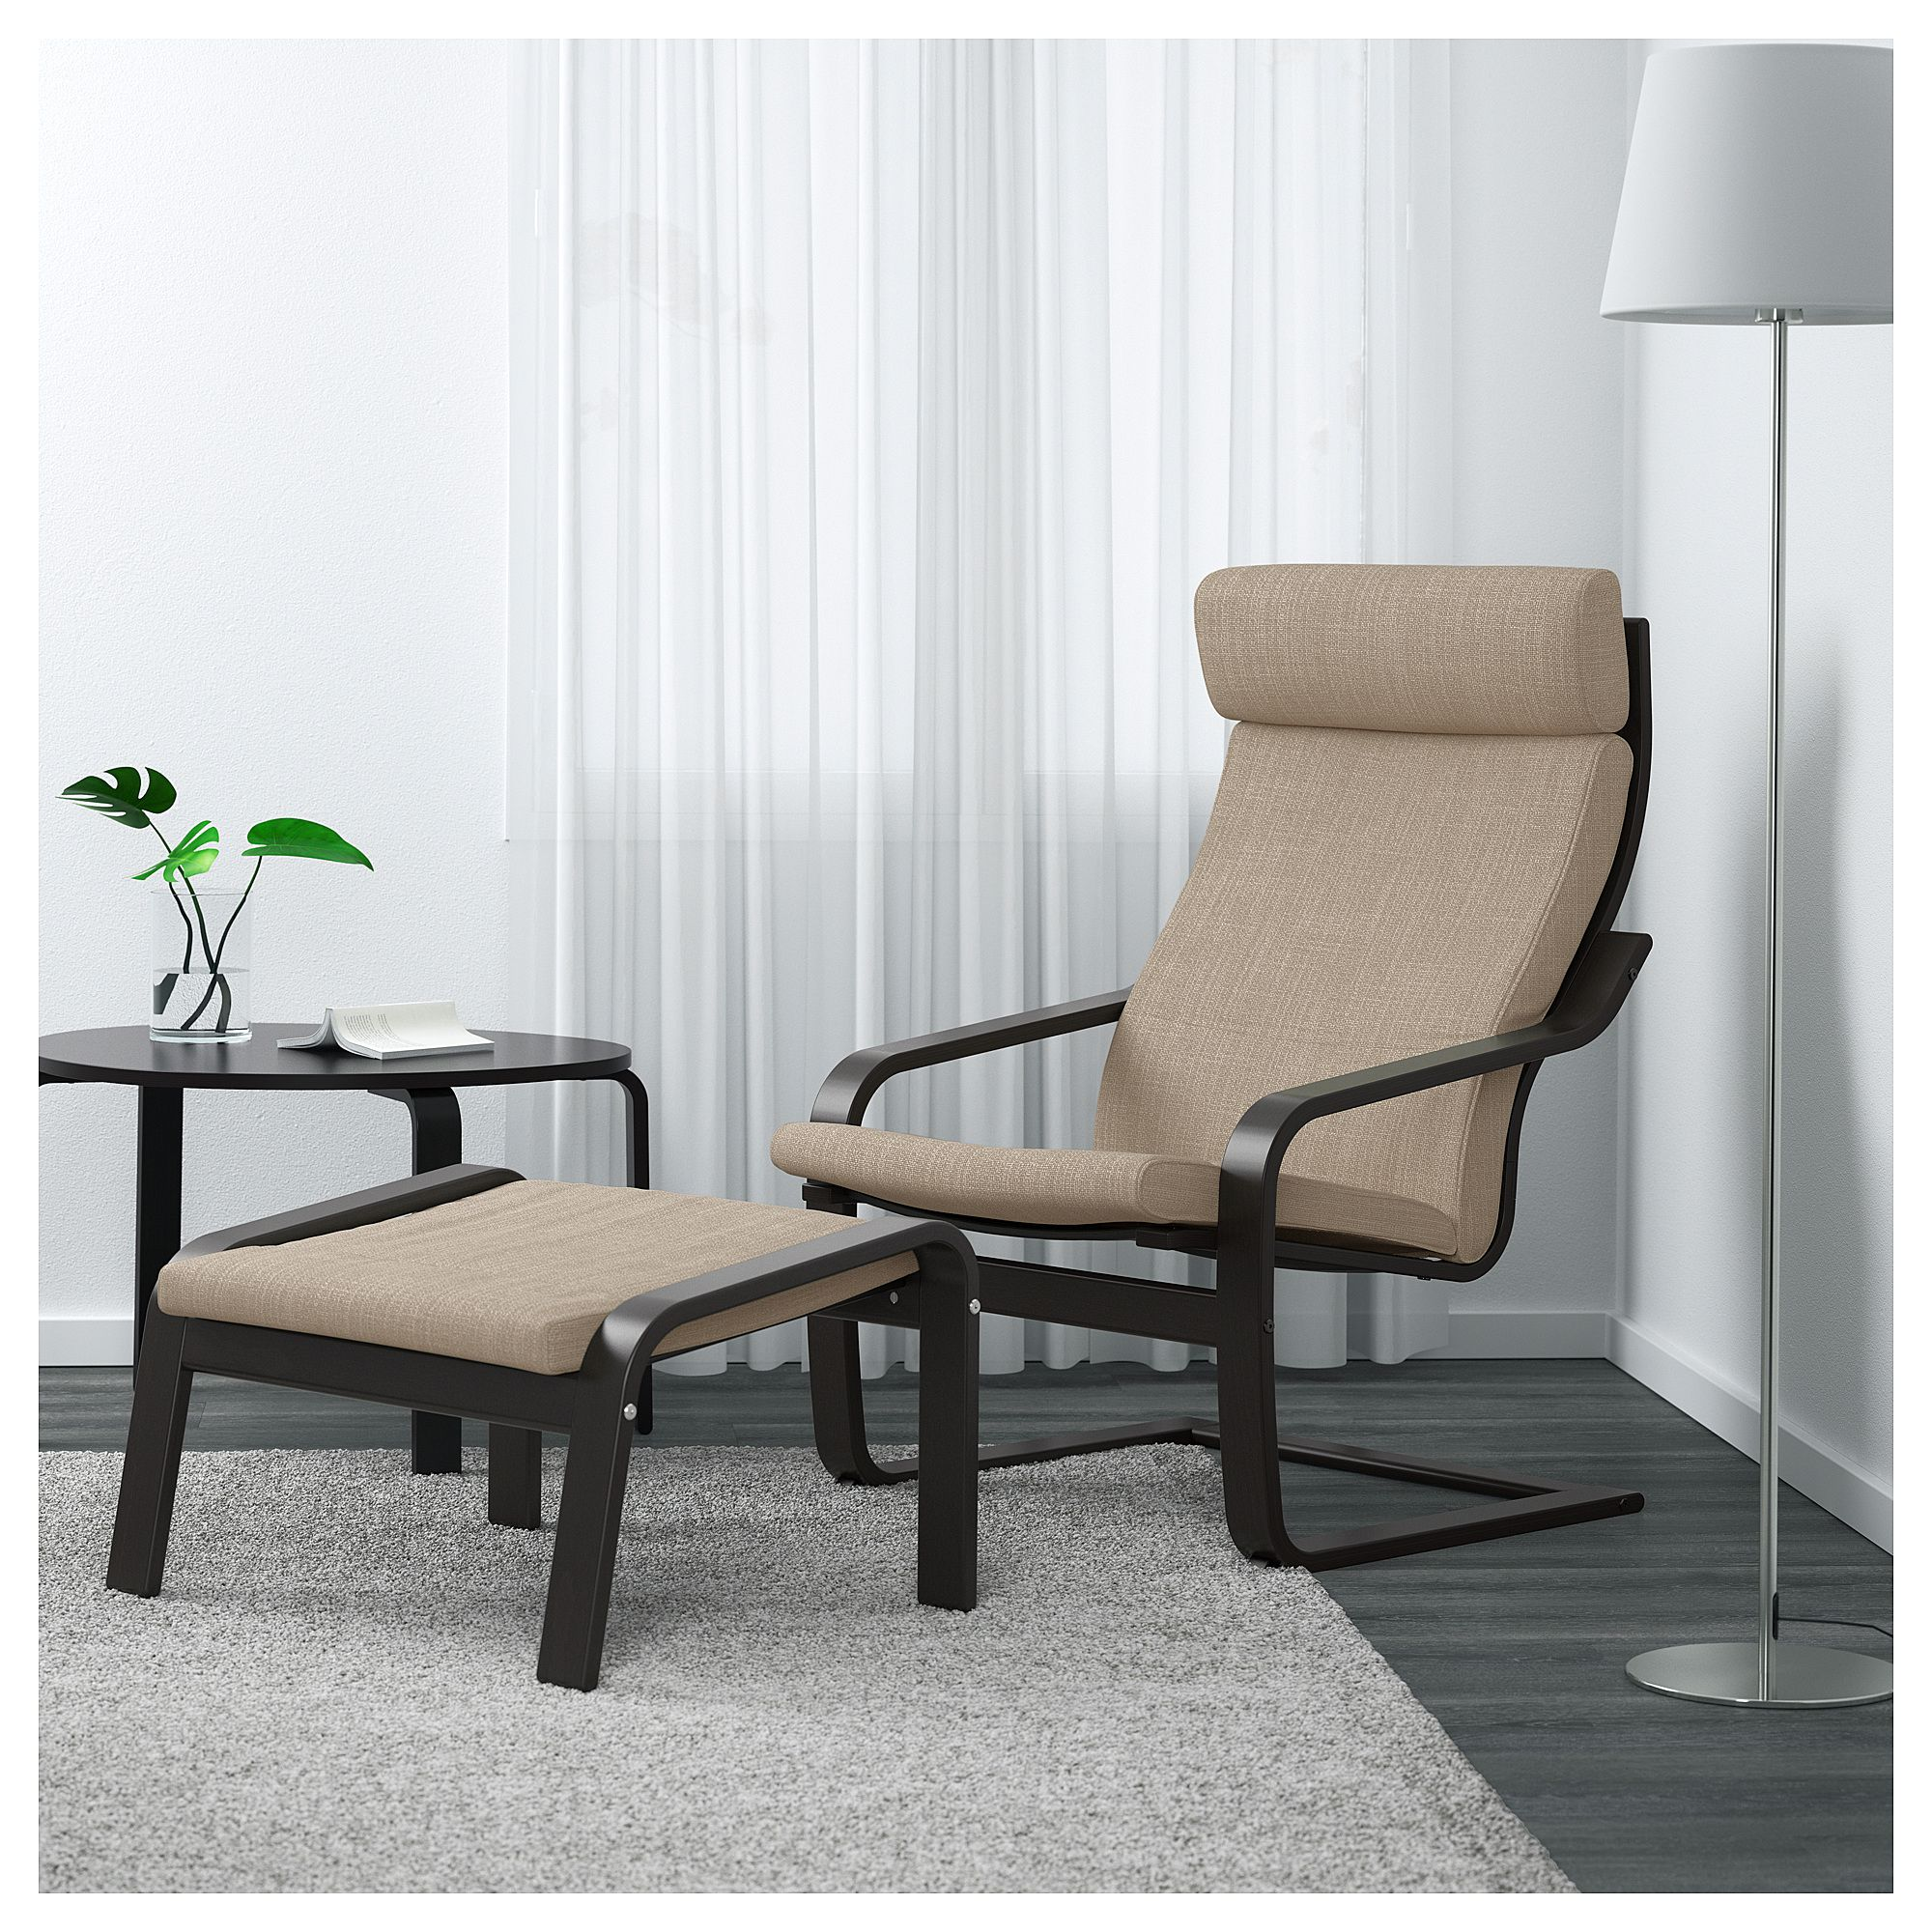 Groovy Furniture And Home Furnishings Bedroom Ikea Armchair Machost Co Dining Chair Design Ideas Machostcouk